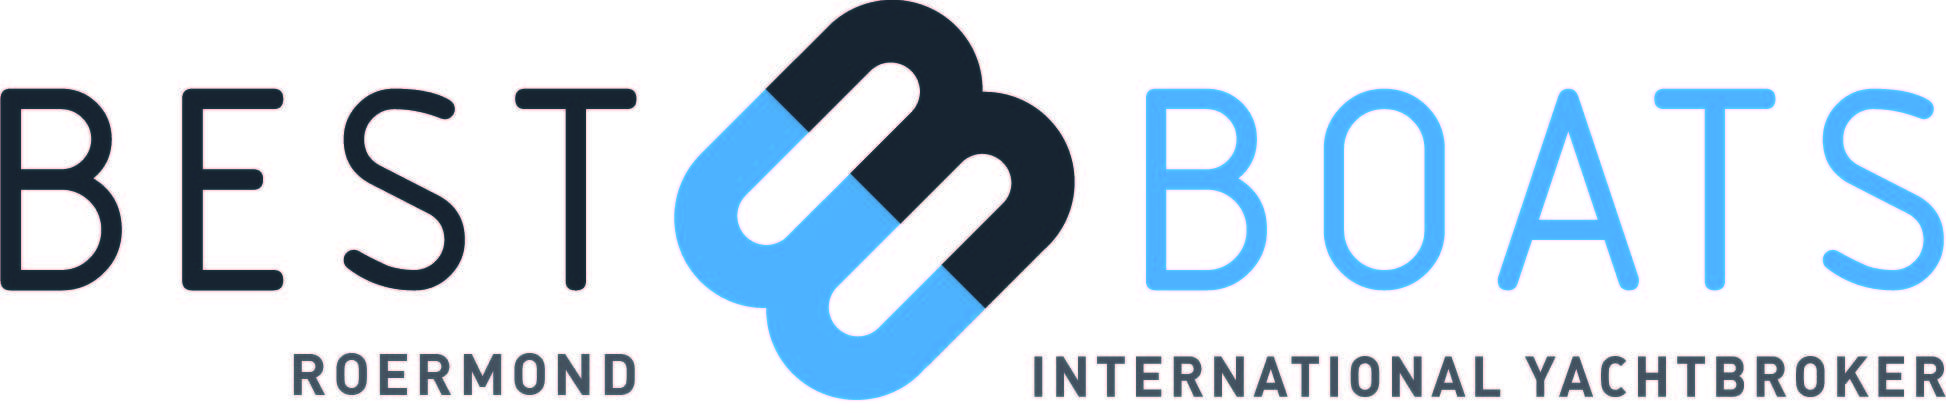 Logo - BestBoats International Yachtbrokers